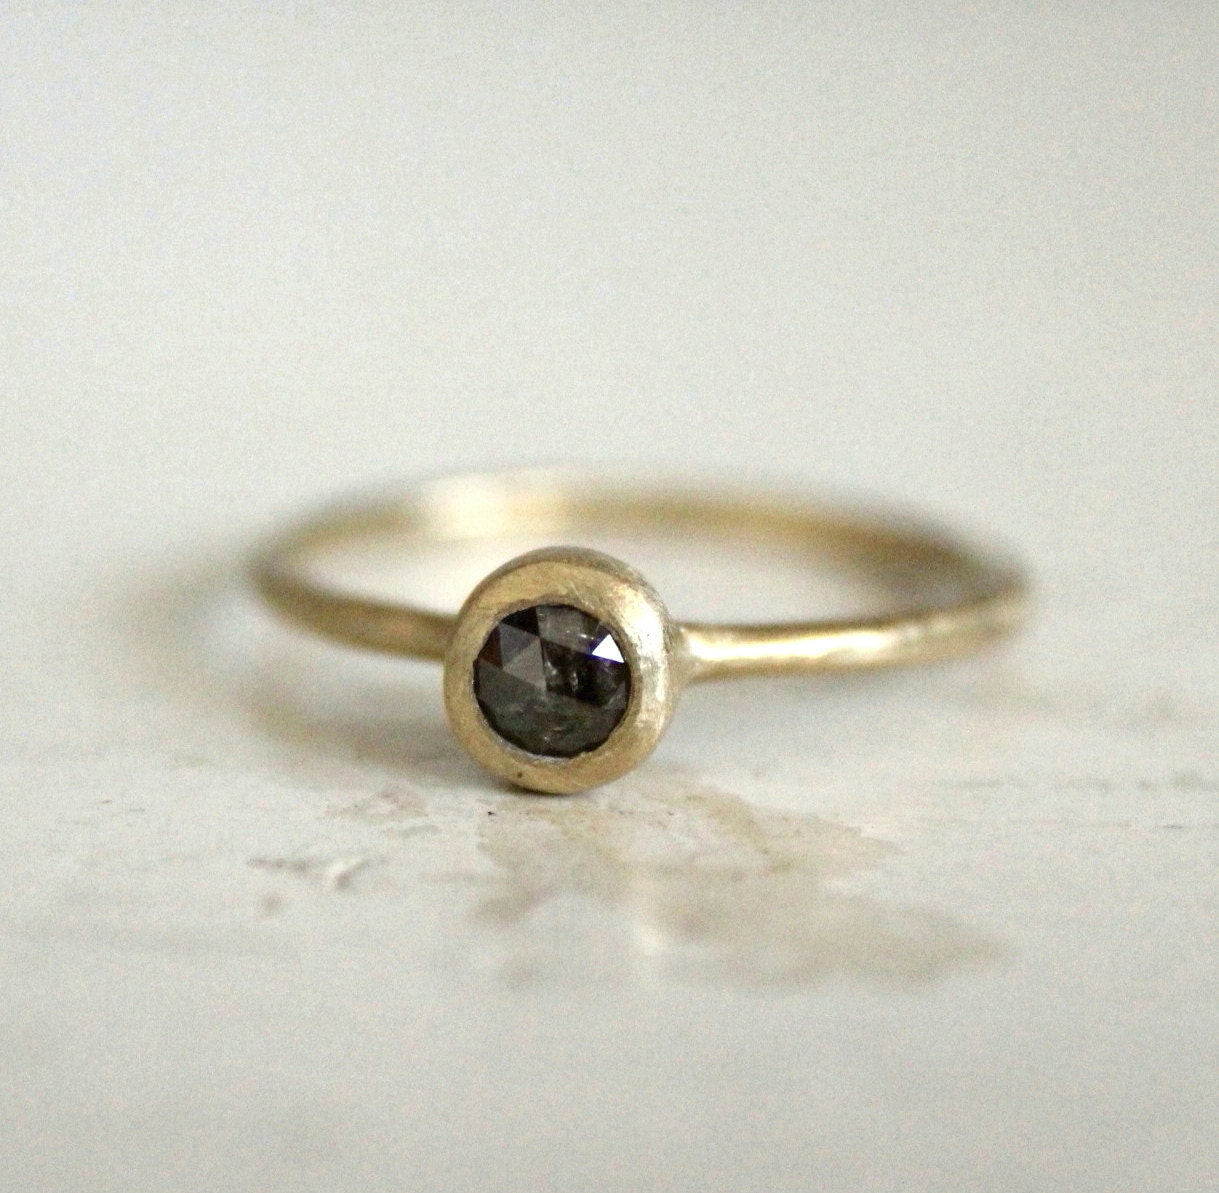 Rustic Diamond: Rustic Engagement Rose Cut Diamond Ring. Dark Galaxy. Joplin